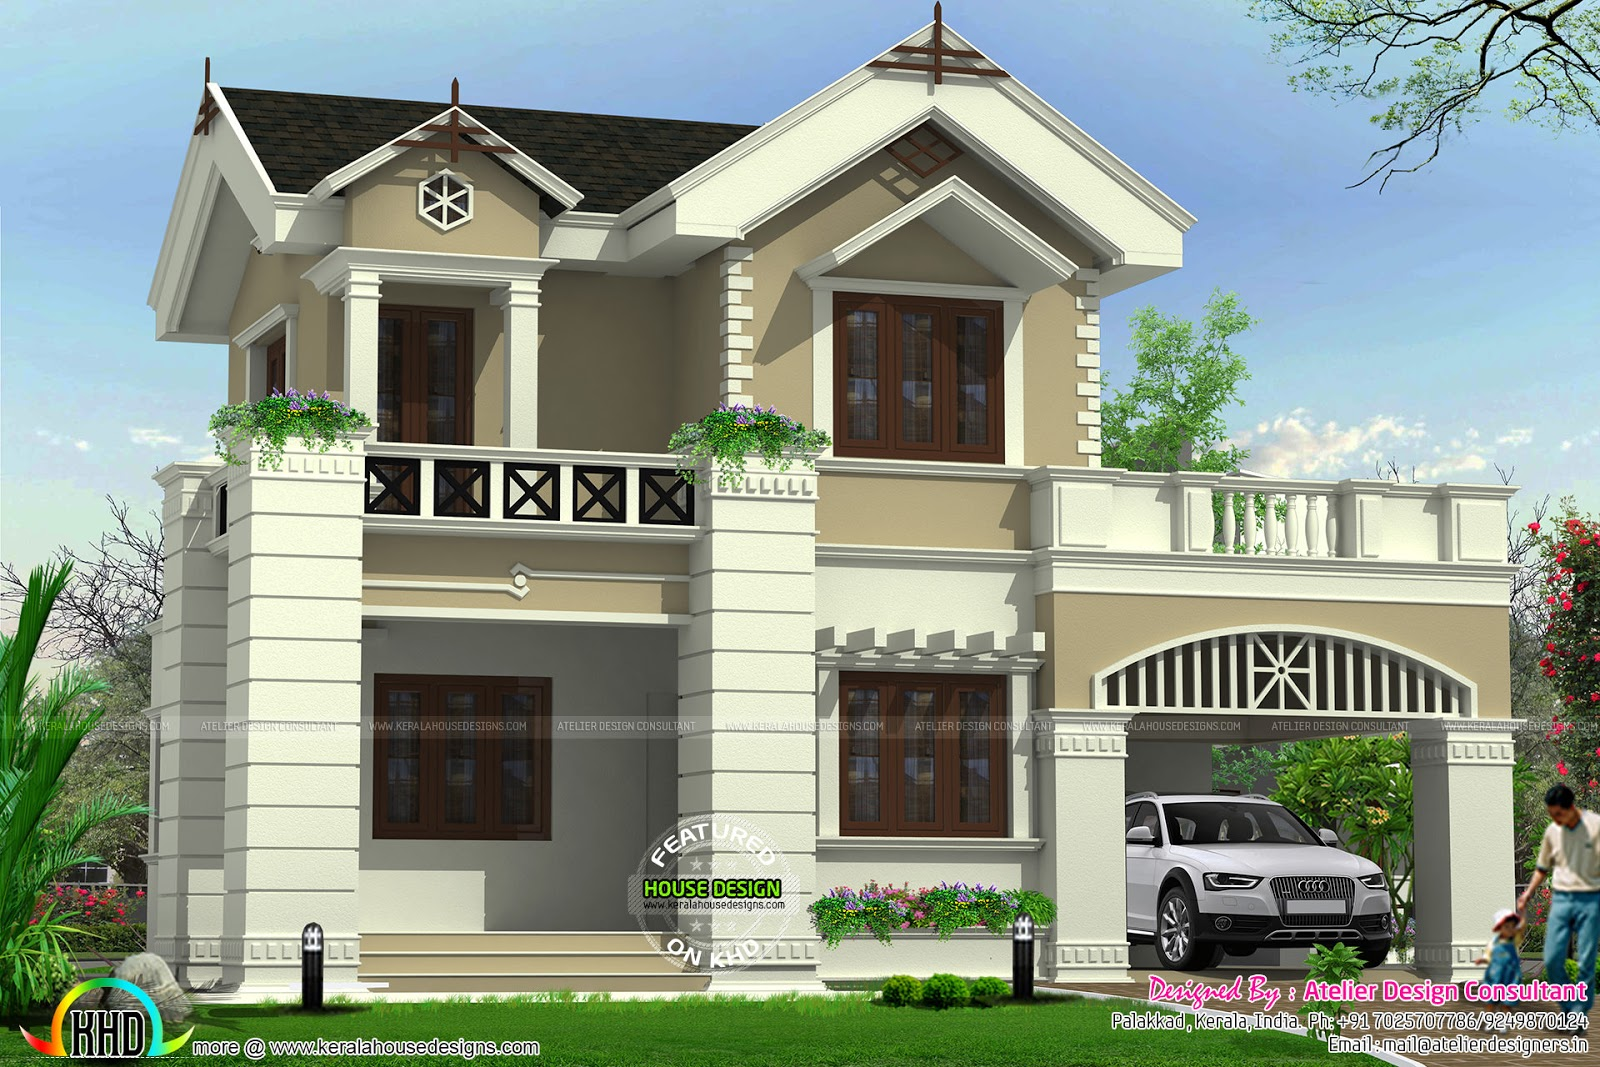 Cute victorian model home kerala home design and floor plans for House models and plans